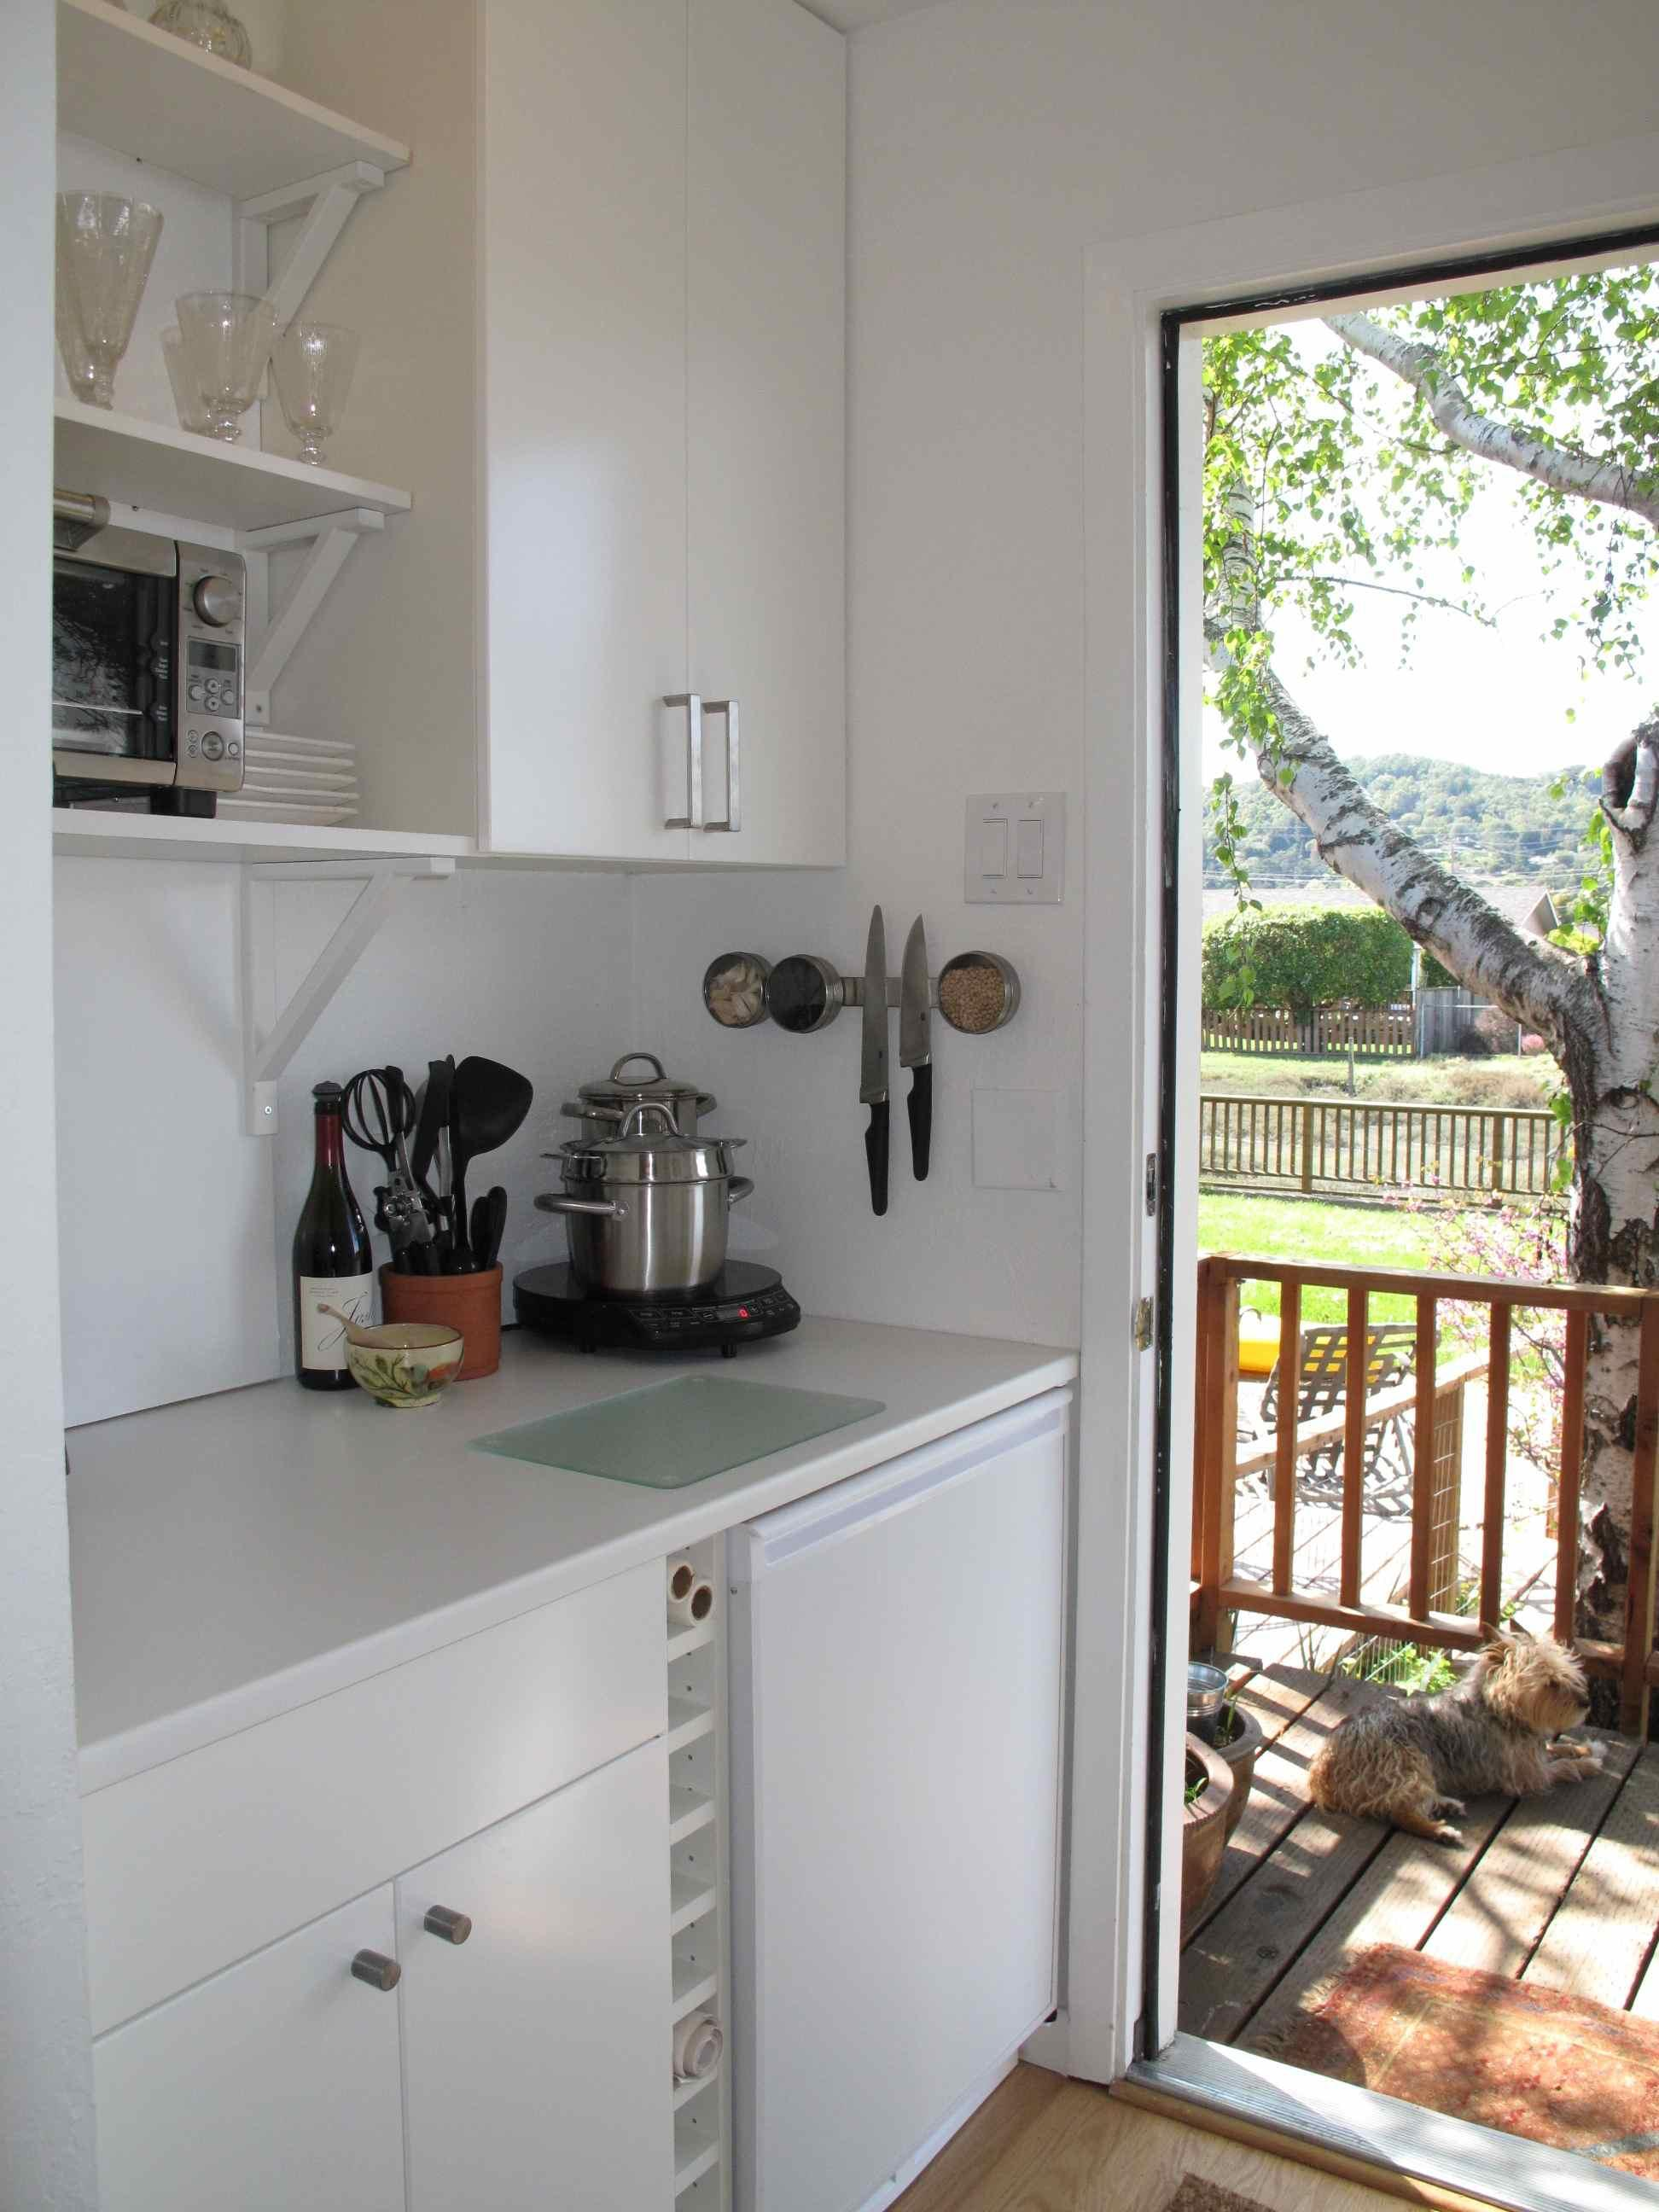 Master Bedroom Kitchenette innovative programs add housing options in the north bay   krcb